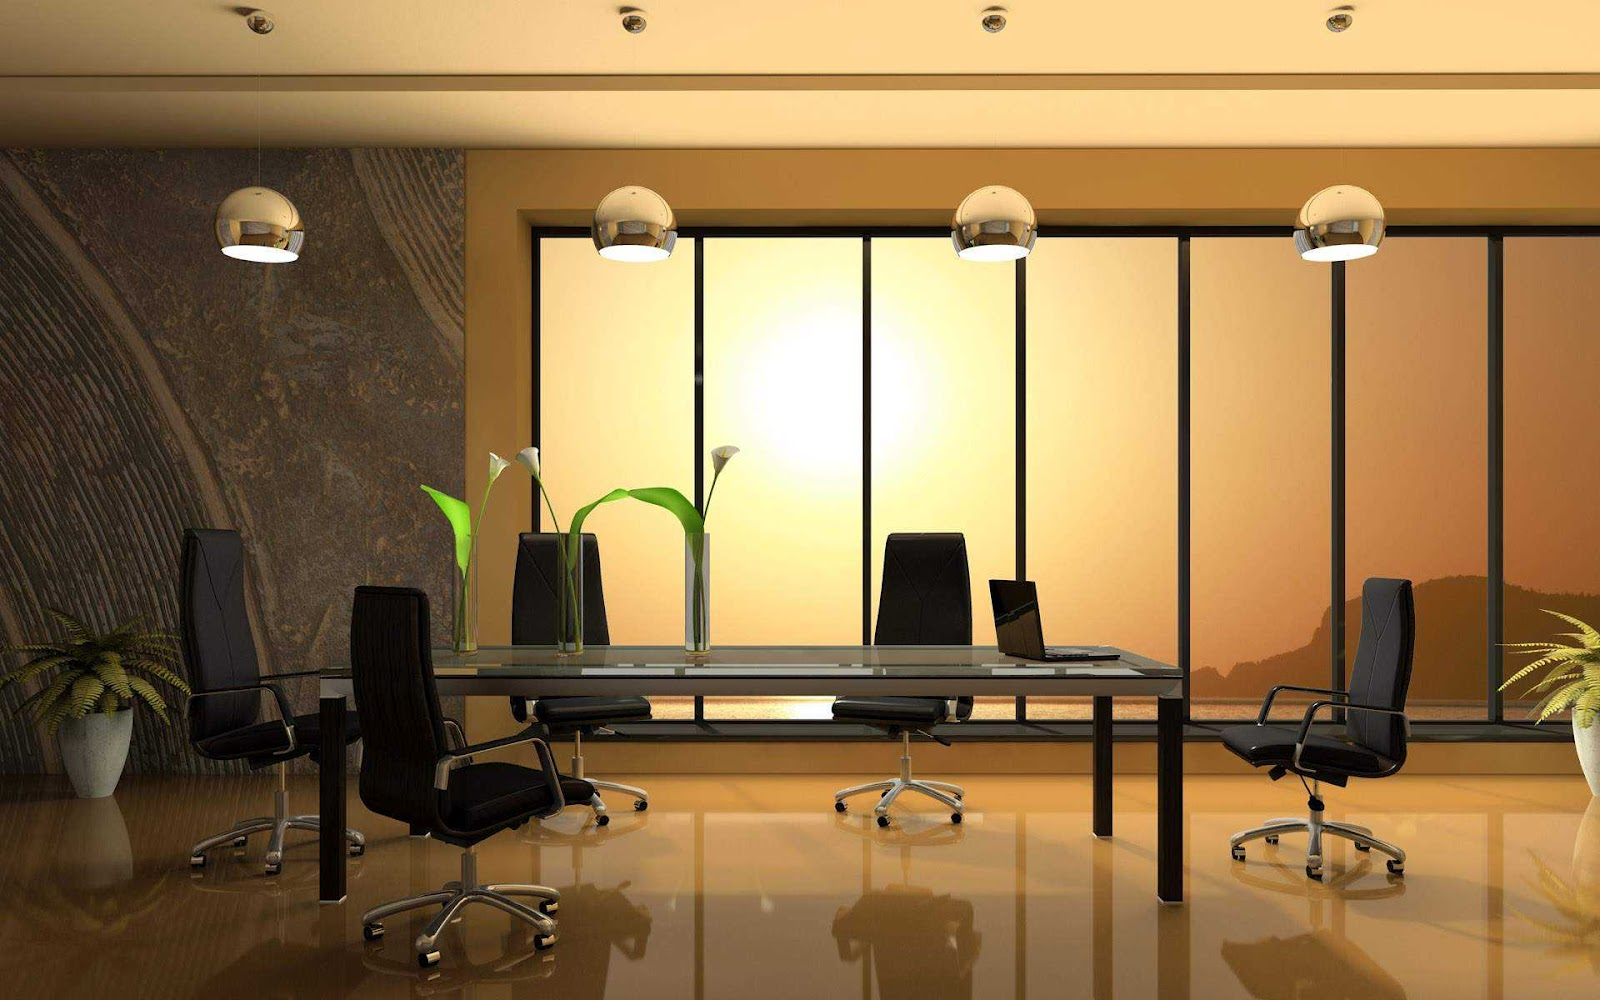 Luxury office office furniture design modern home office Furniture interior design ideas